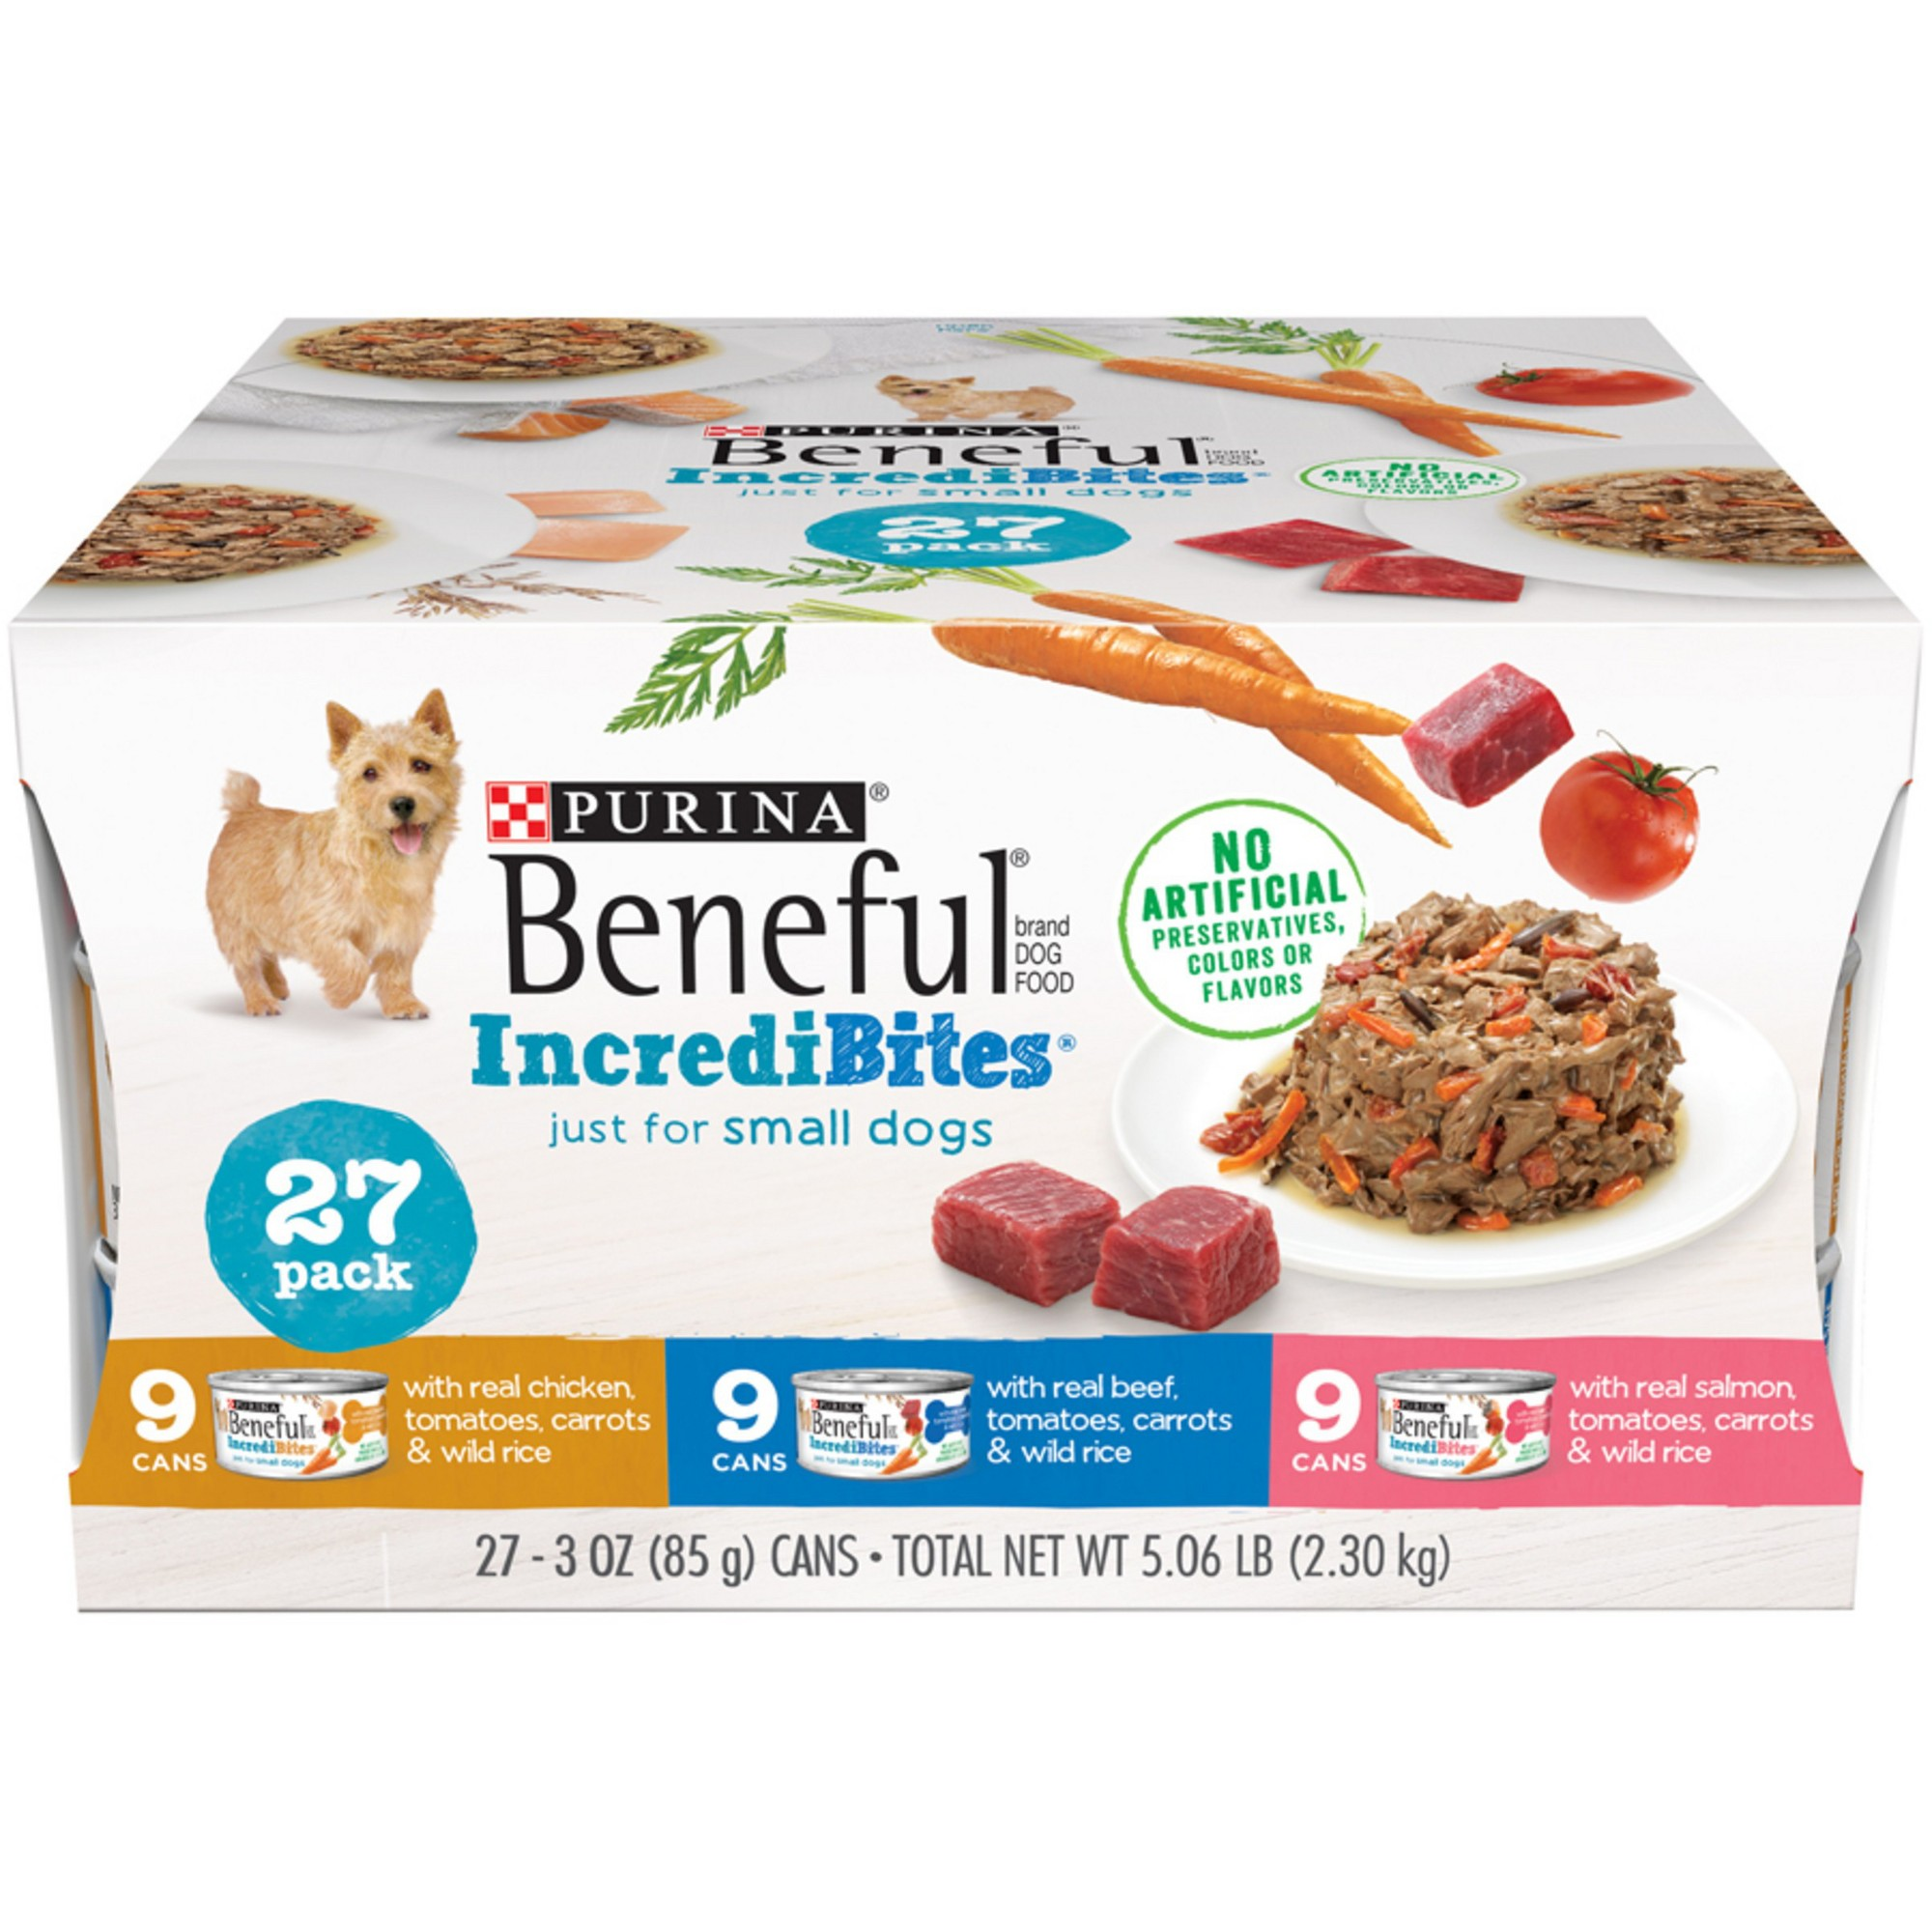 Beneful Incredibites Dry Dog Food Variety Pack 27ct Dog Food